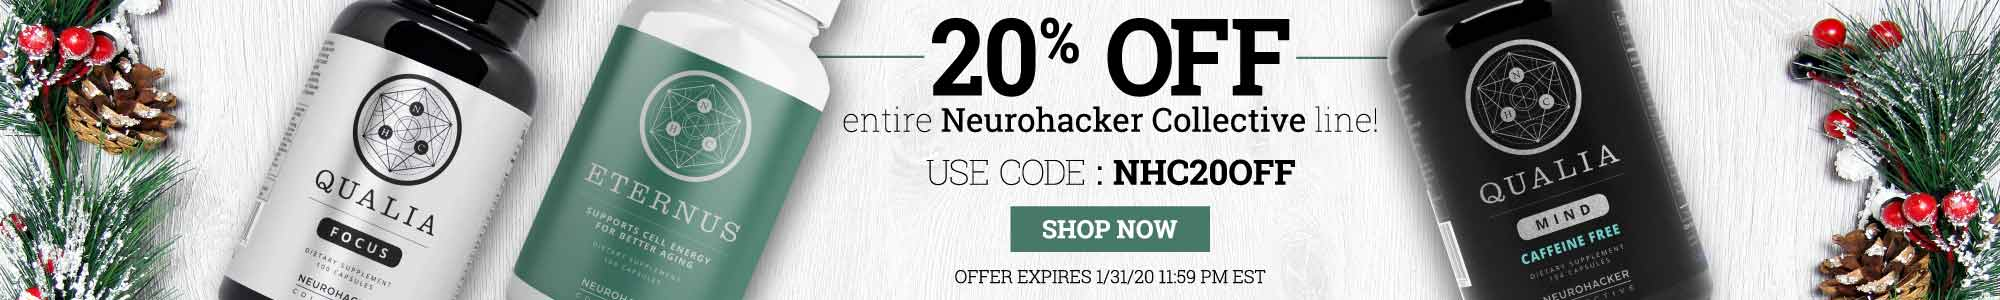 NeuroHacker Collective - Save 20% off entire line use coupon code NHC20OFF